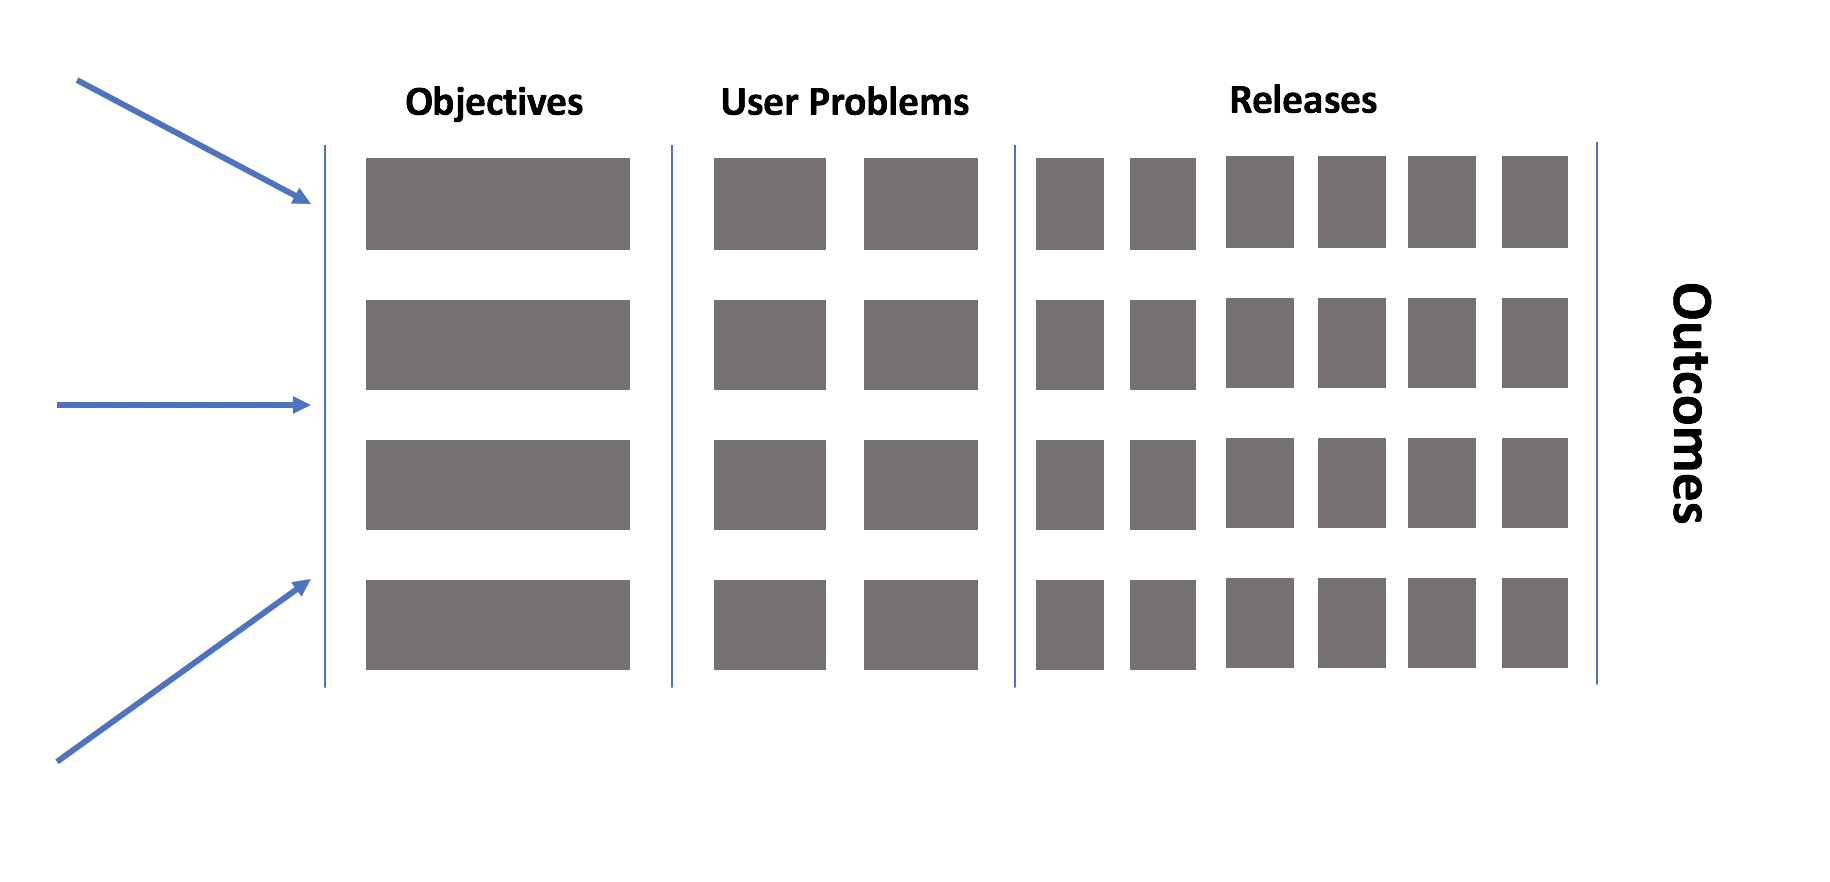 Clean flow of work with arrows on the left pointing to objectives, which then lead to user problems to solve, then releases.